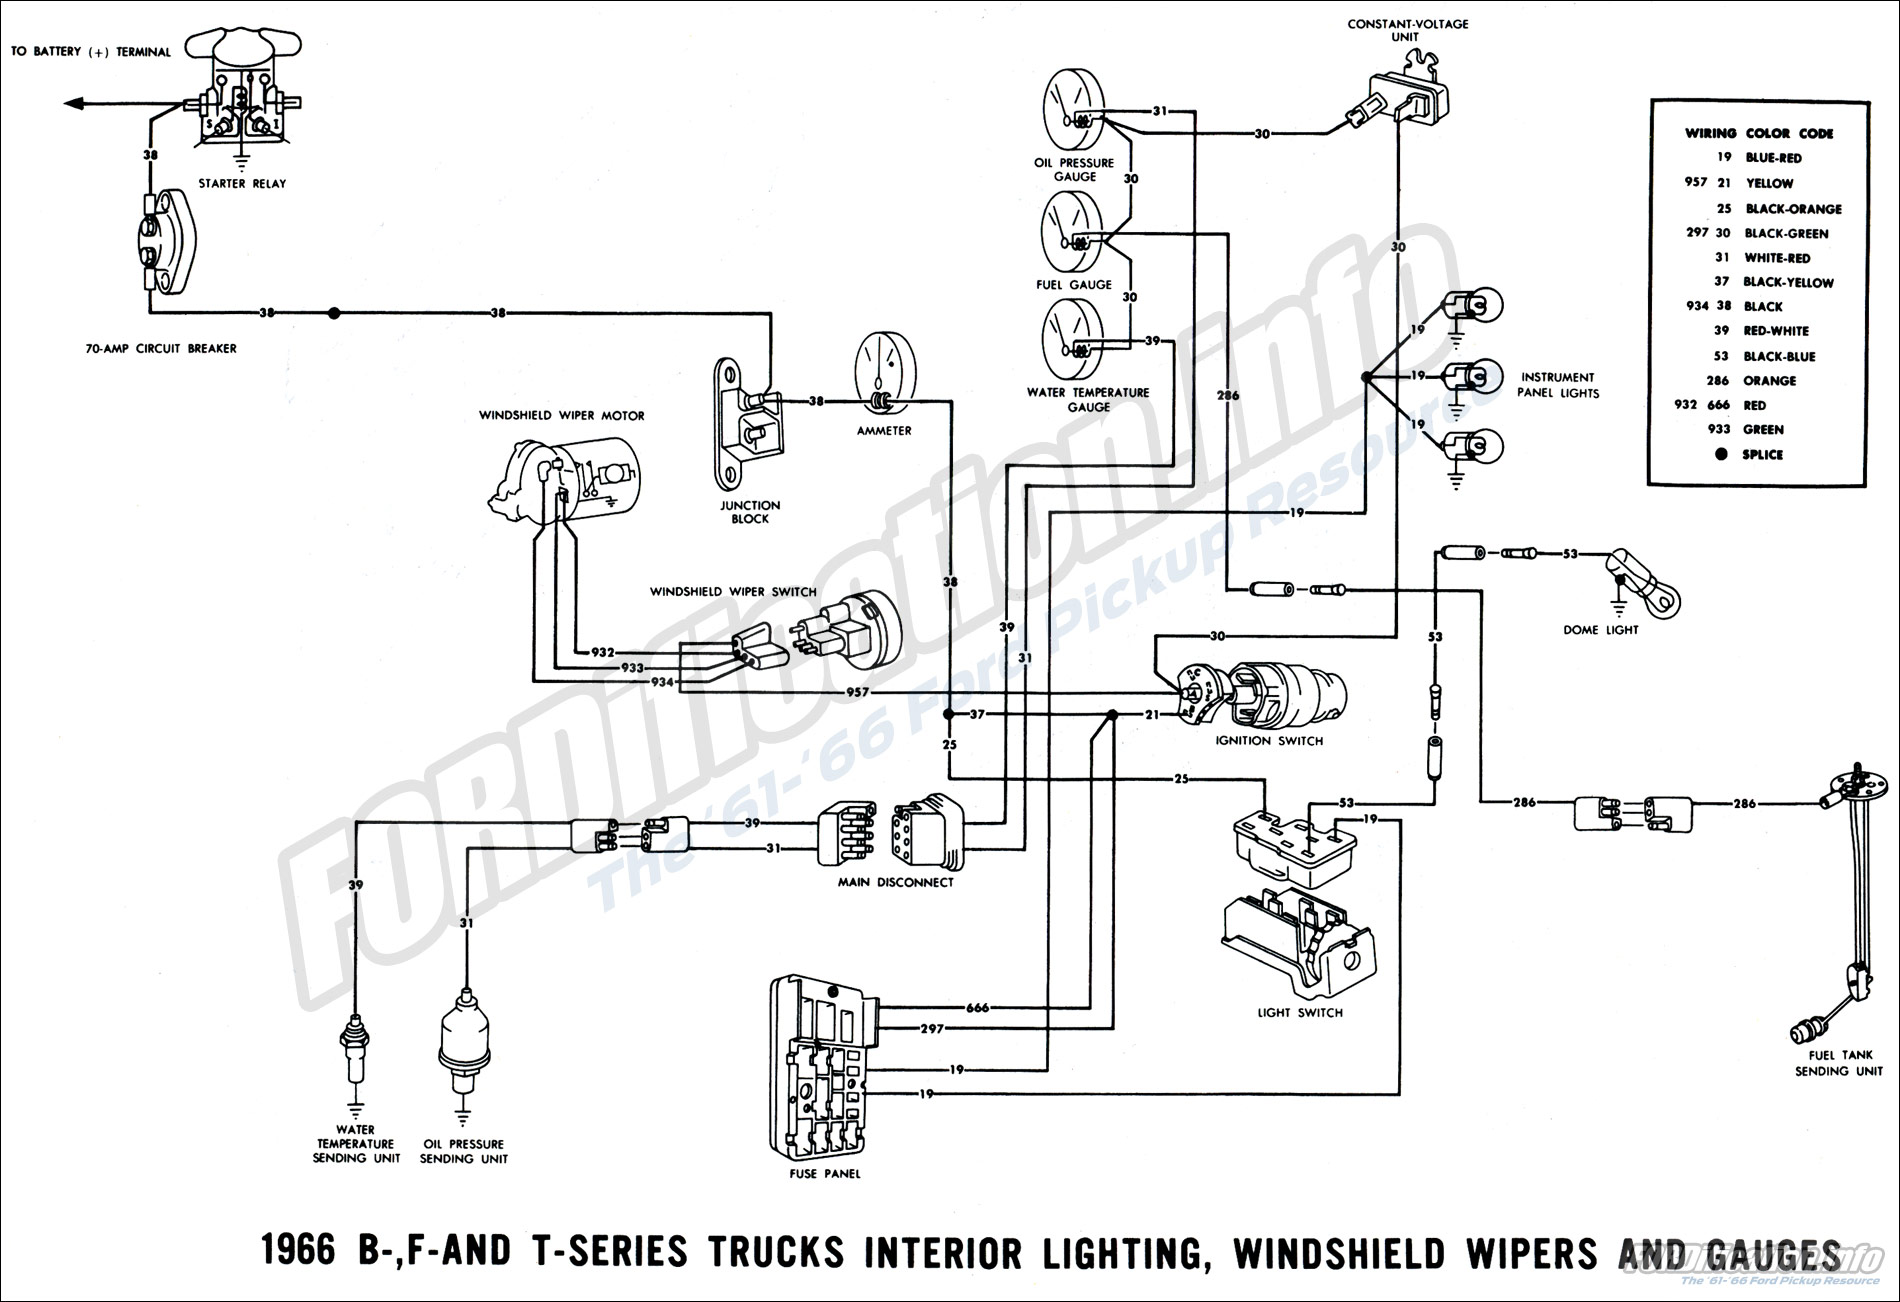 wiring diagram for 66 ford f100 1966 ford truck wiring diagrams - fordification.info - the ... wiring diagram for 1966 ford f100